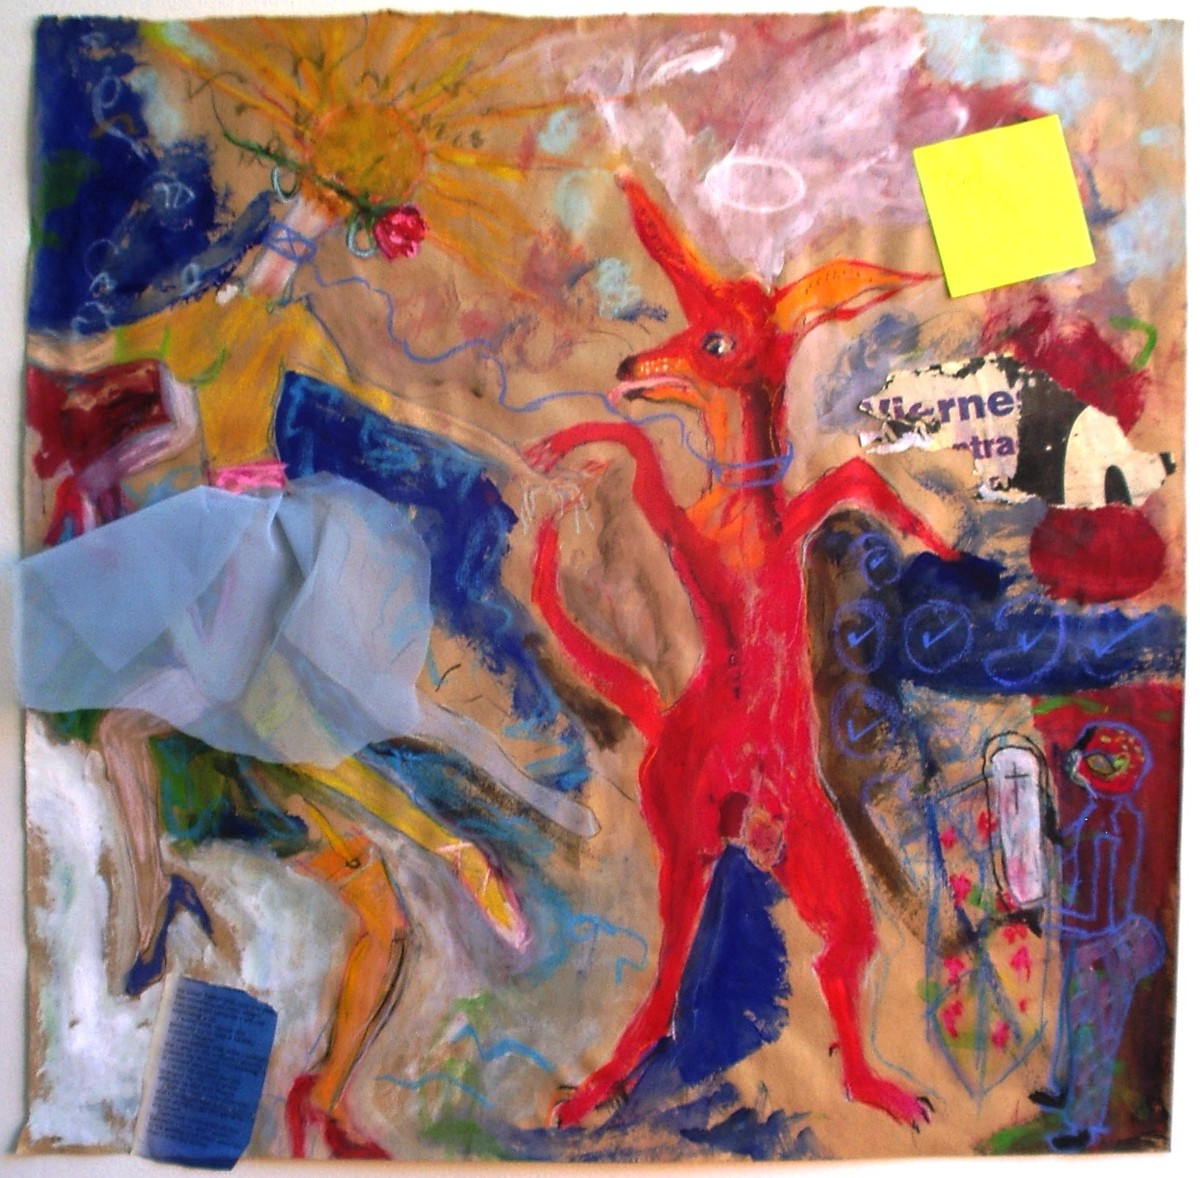 'Dancing with my dog' 2012 (large view)